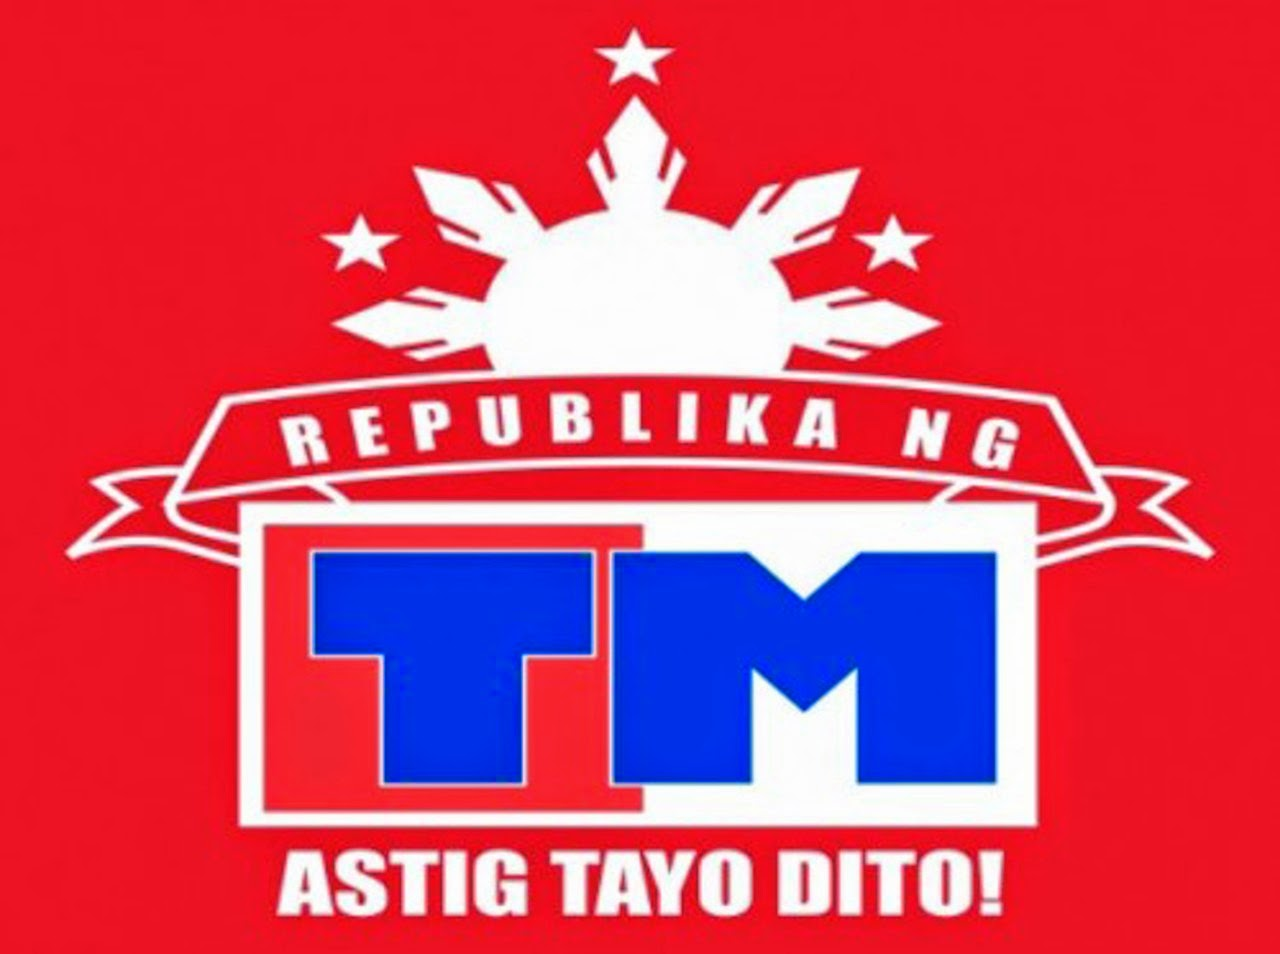 REPUBLIKA NG TM ASTIG TAYO DITO! PROMOS APRIL 2015